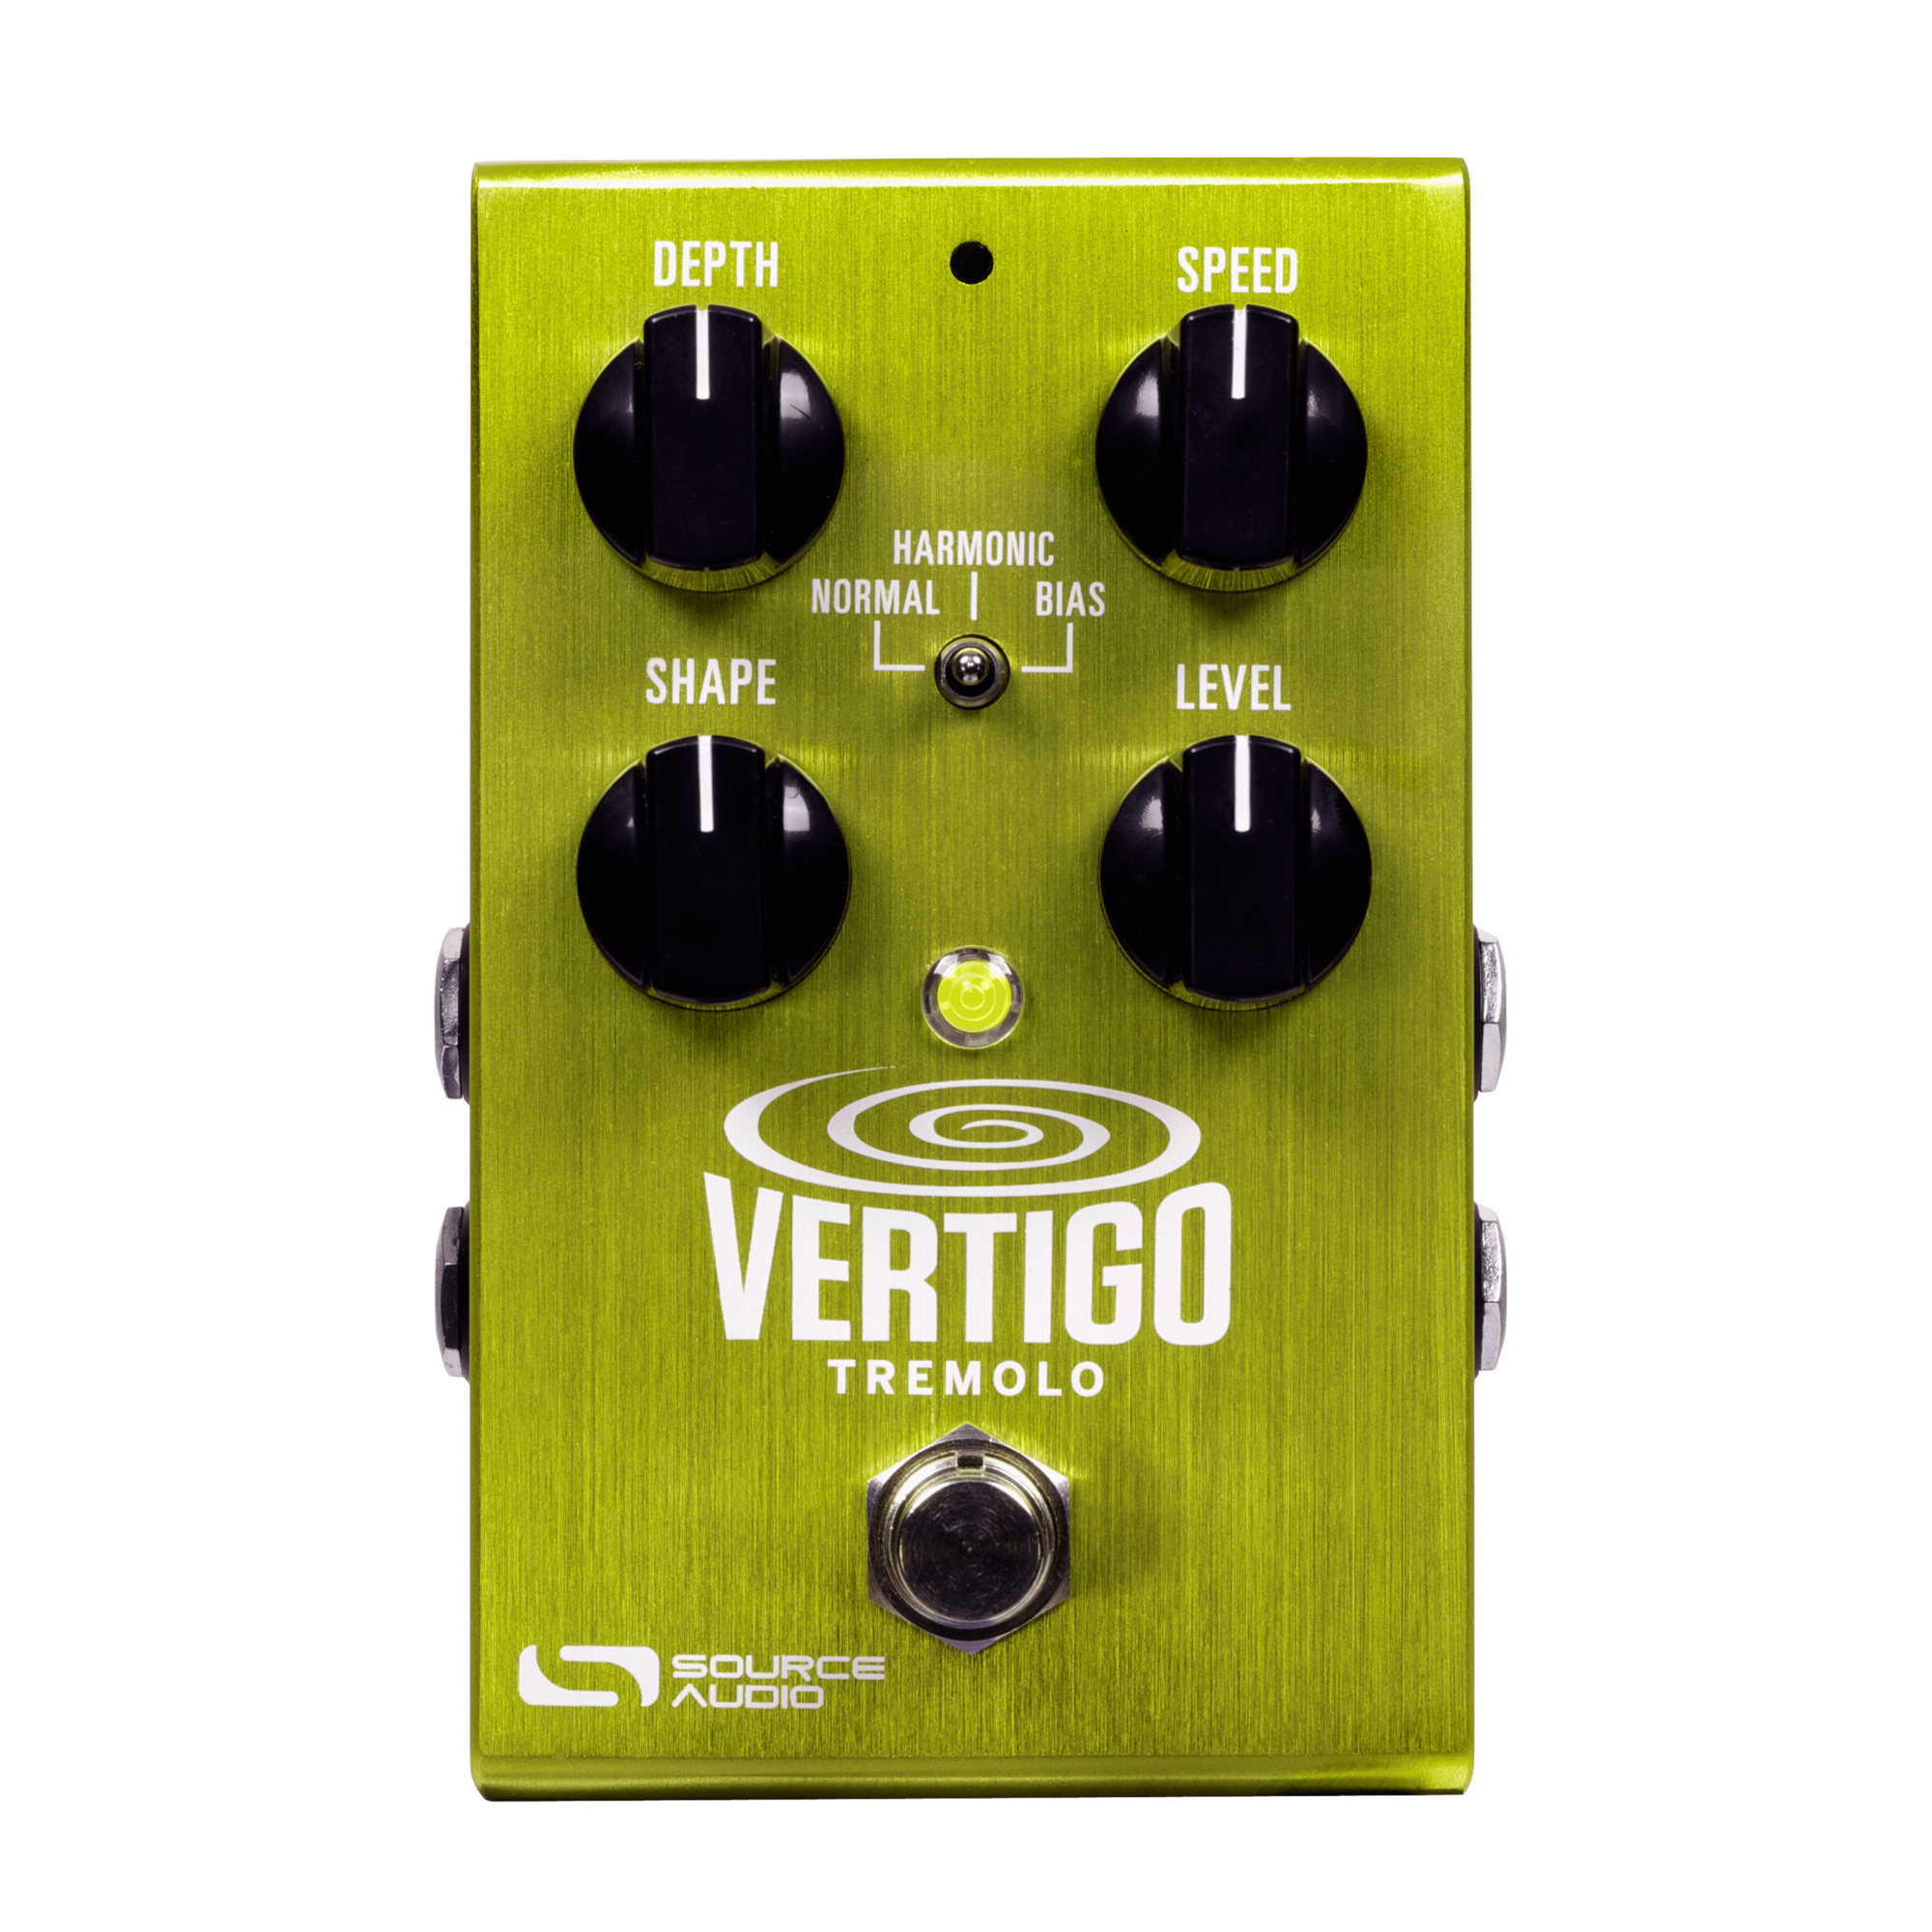 Soure Audio Vertigo Tremolo